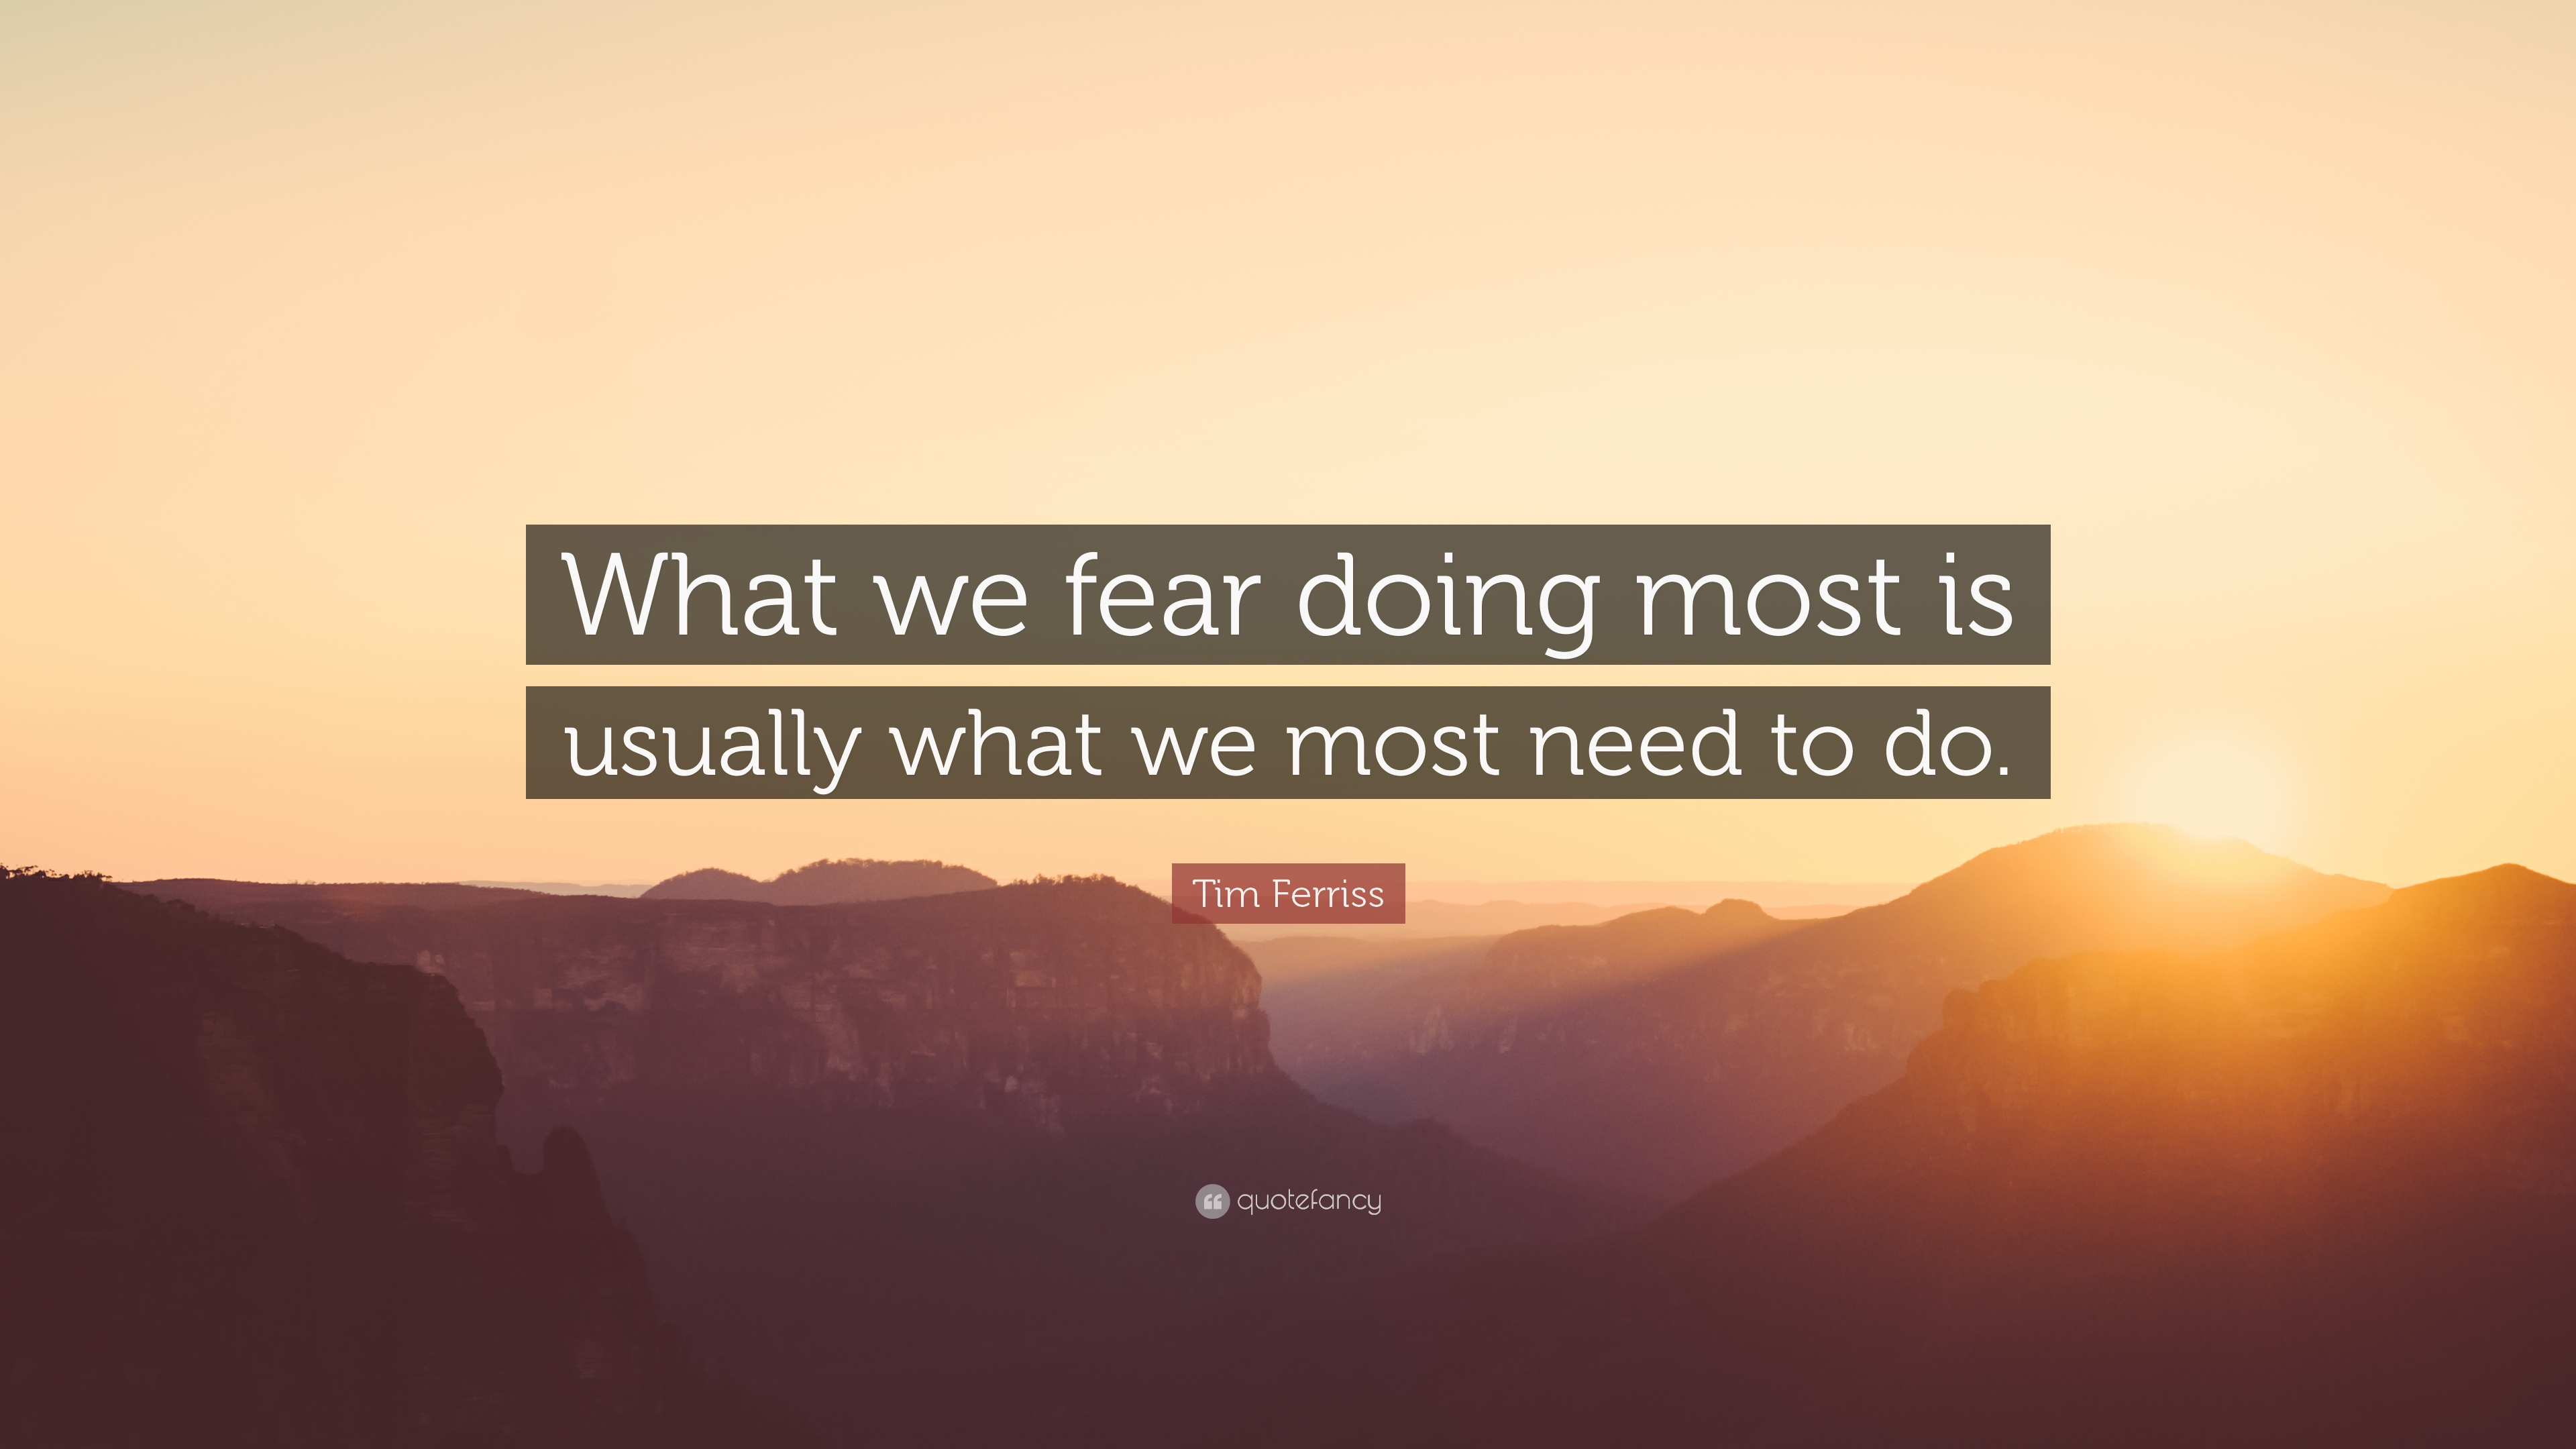 Dazzling Shadows Quotes Beast Shadows Quotes What We Do Tim Ferriss We Fear Doing Most Is Usually What We Most Need Tim Ferriss Quotes Quote Imdb What We Do inspiration What We Do In The Shadows Quotes